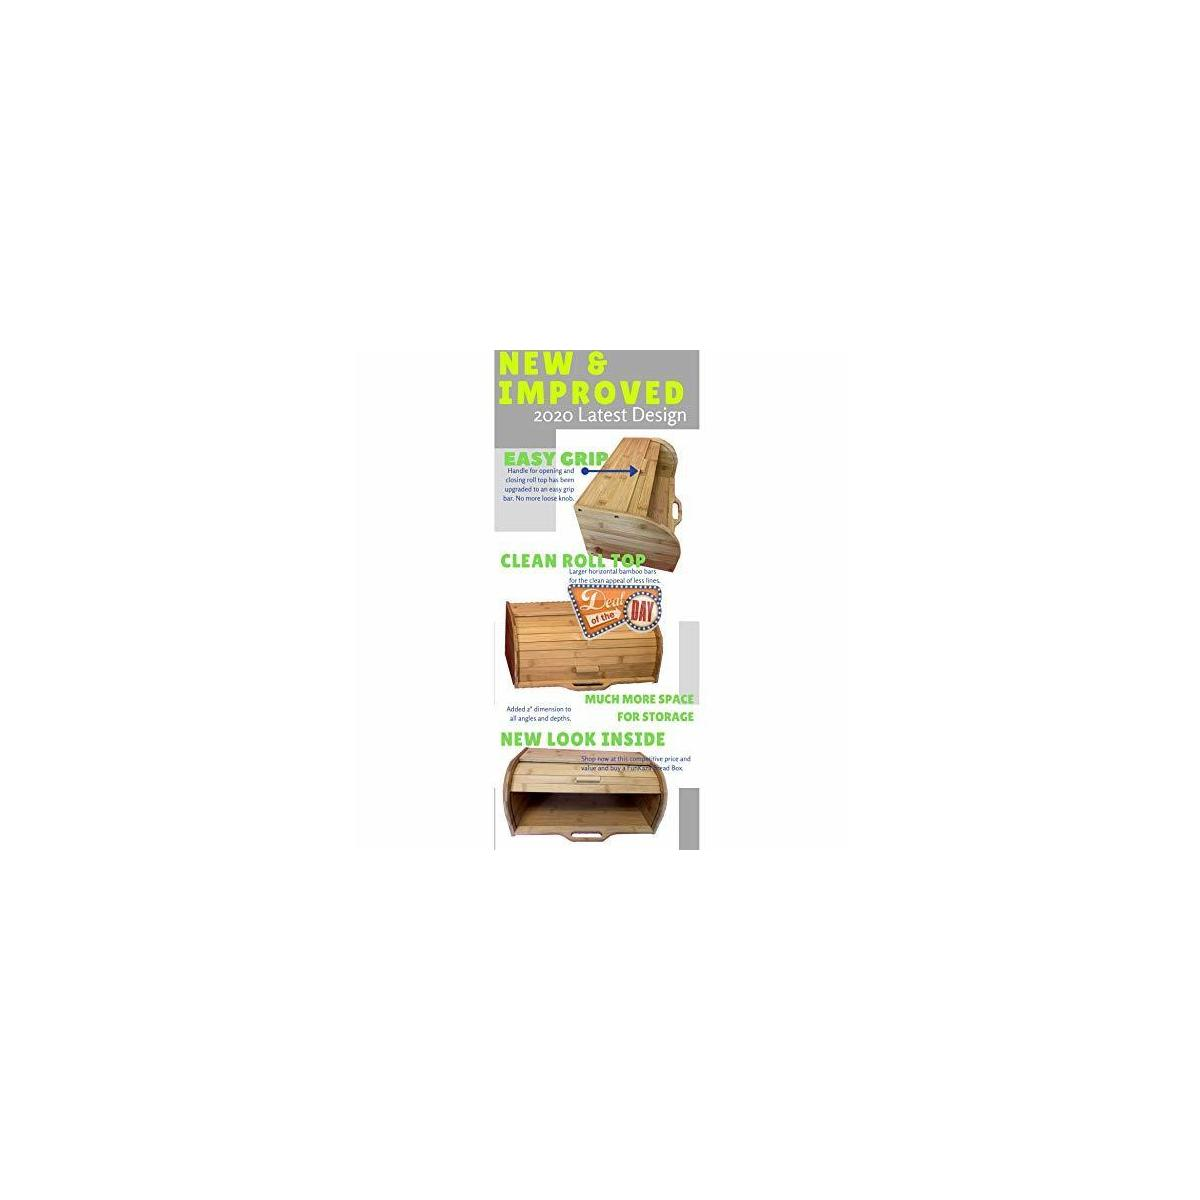 New Easy Grip Large Storage Bamboo Bread Box For Kitchen Counter